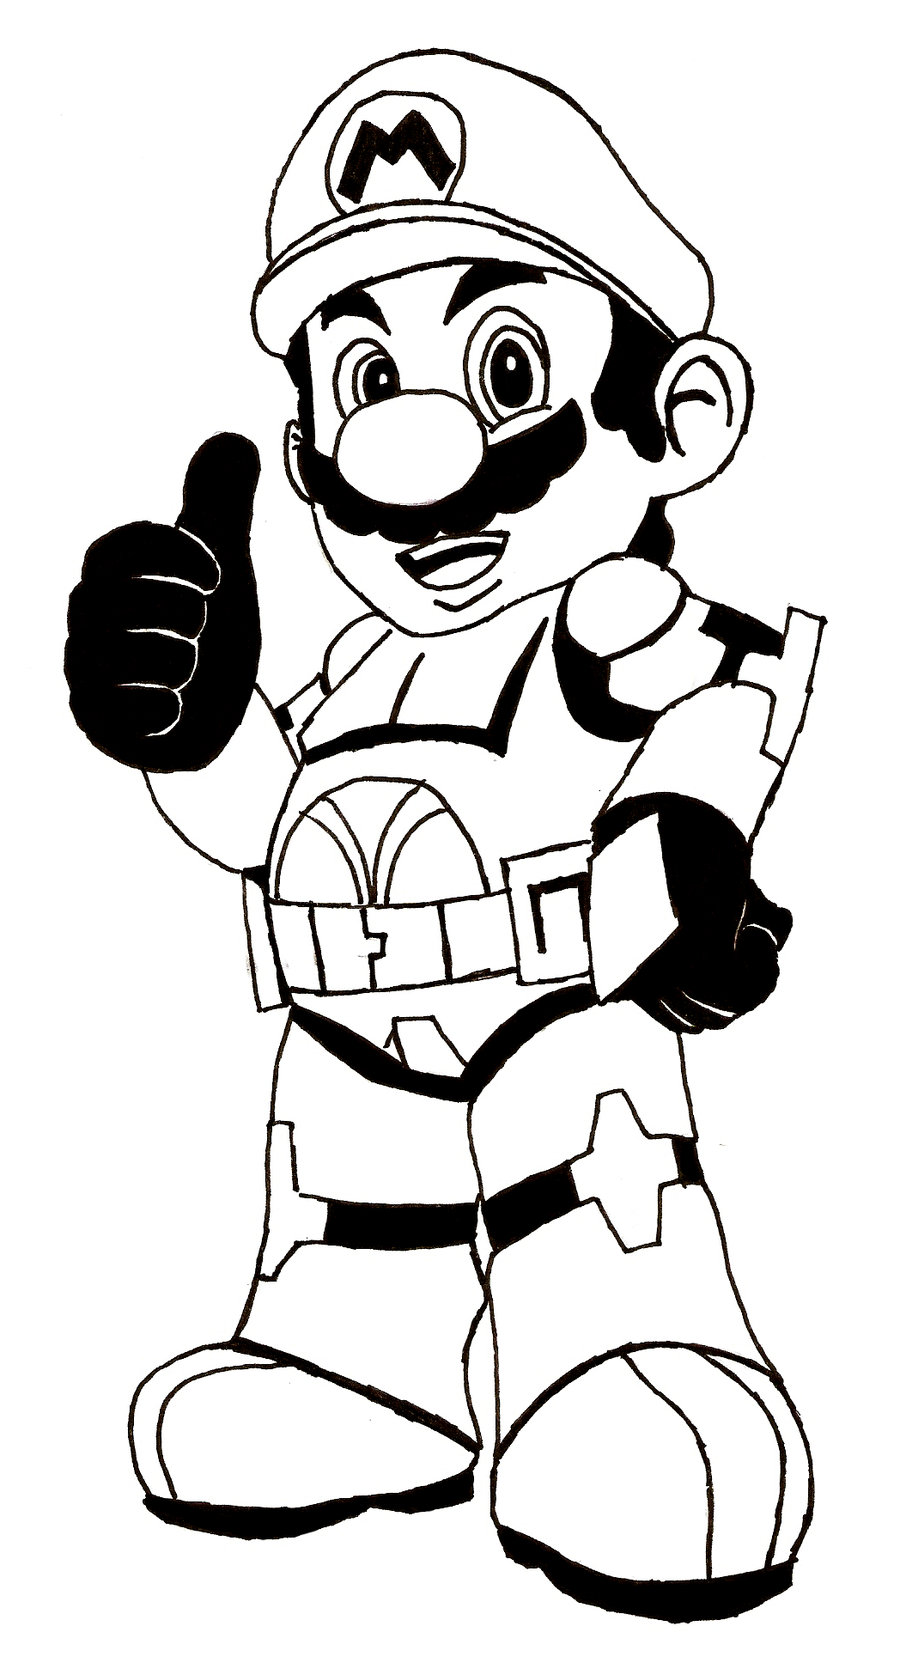 free mario coloring pages to print - Mario Coloring Pages To Print